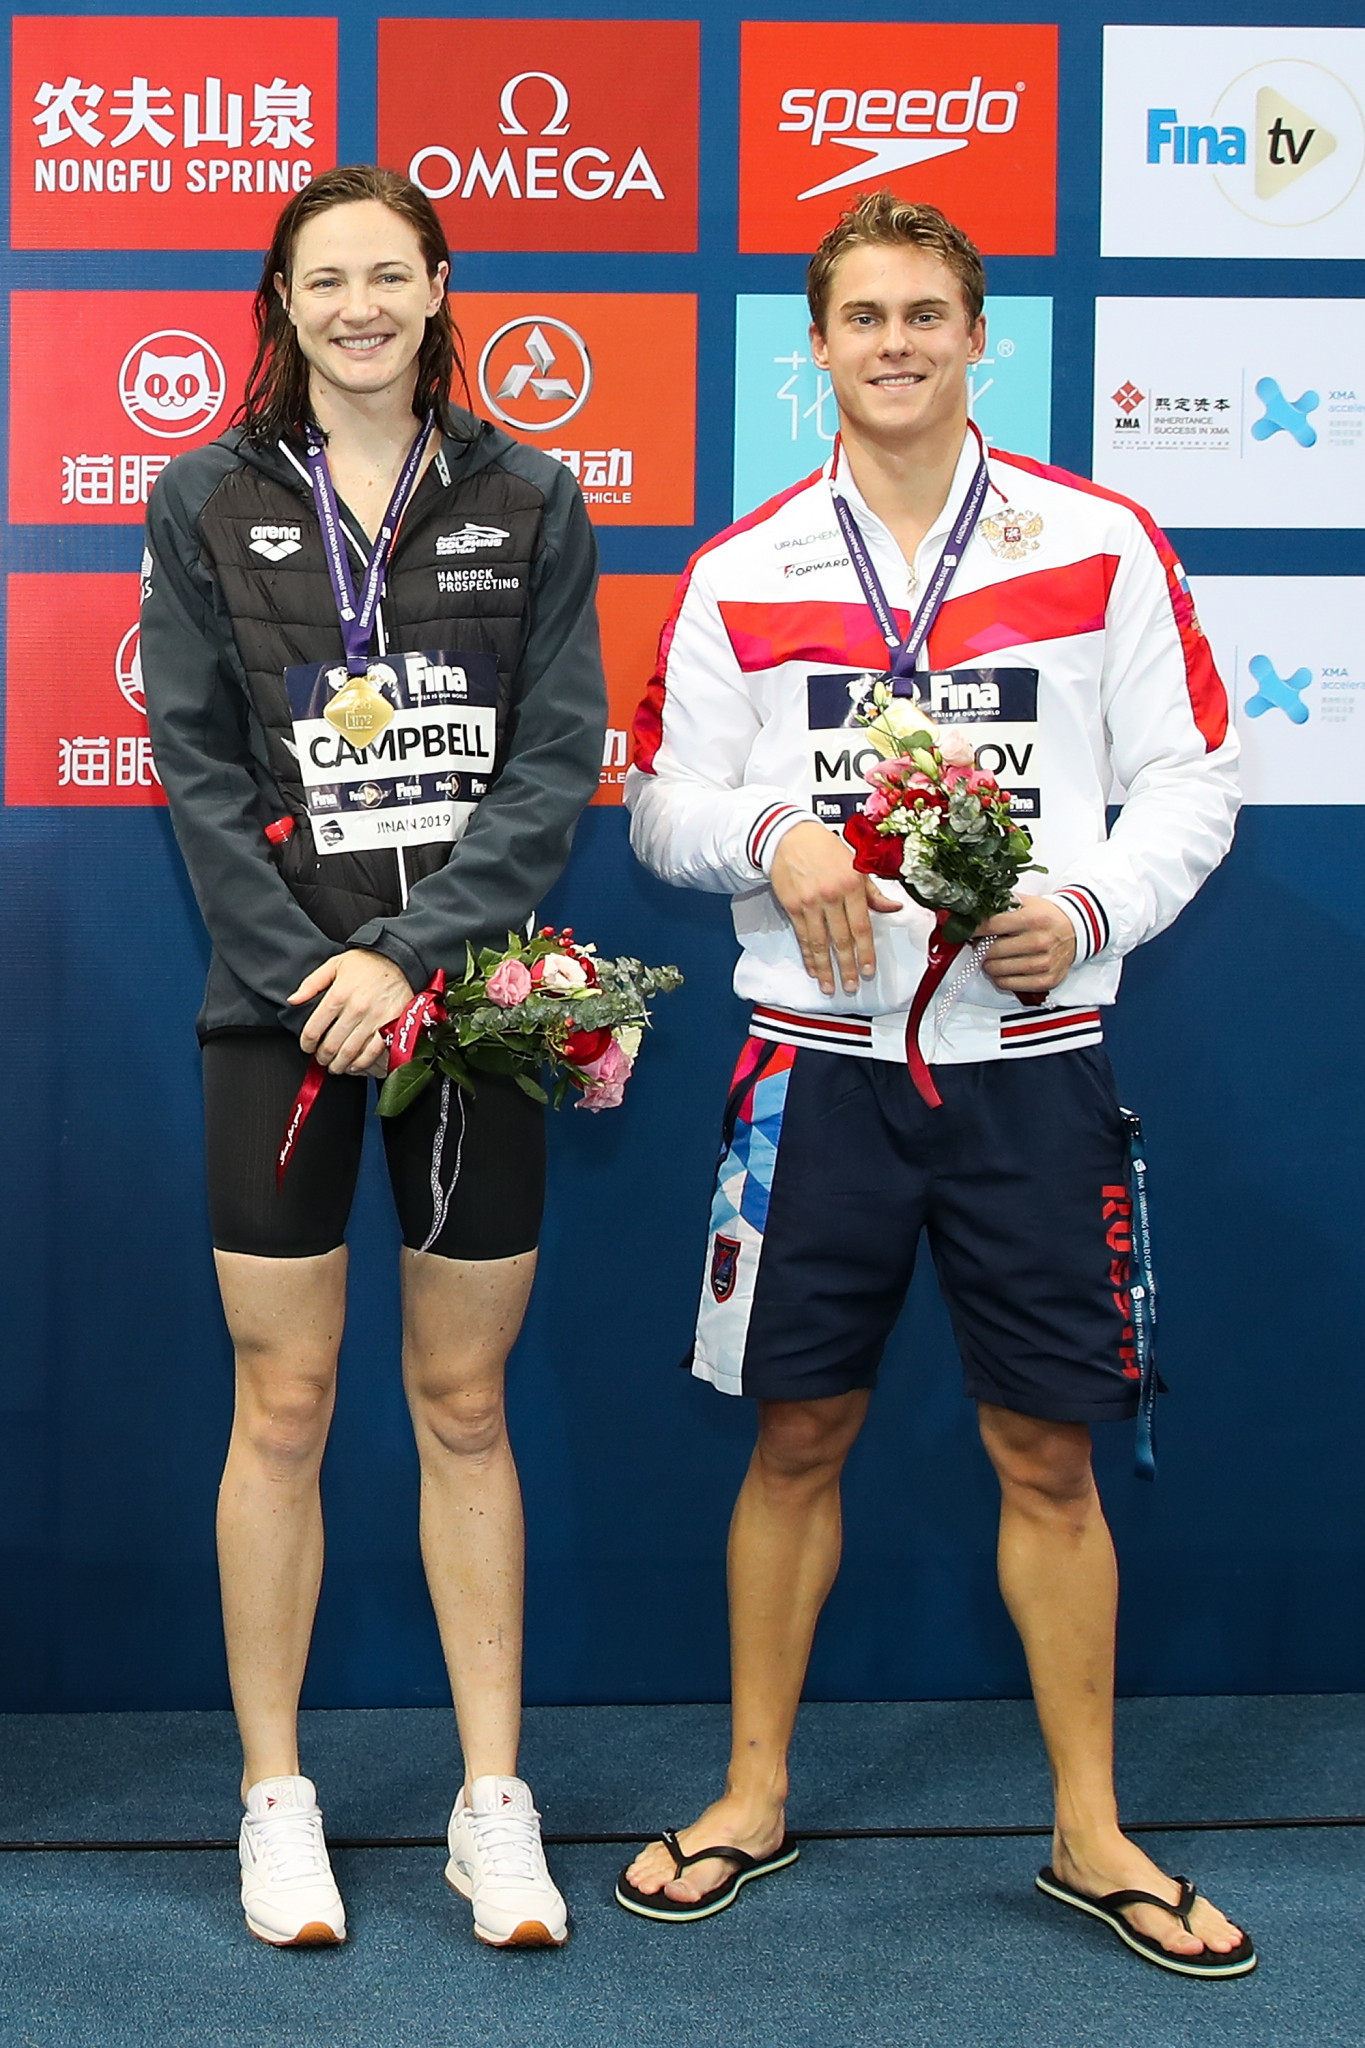 Cate Campbell of Australia and Russian Vladimir Morozov lead the standings ahead of the competition in Singapore ©Getty Images